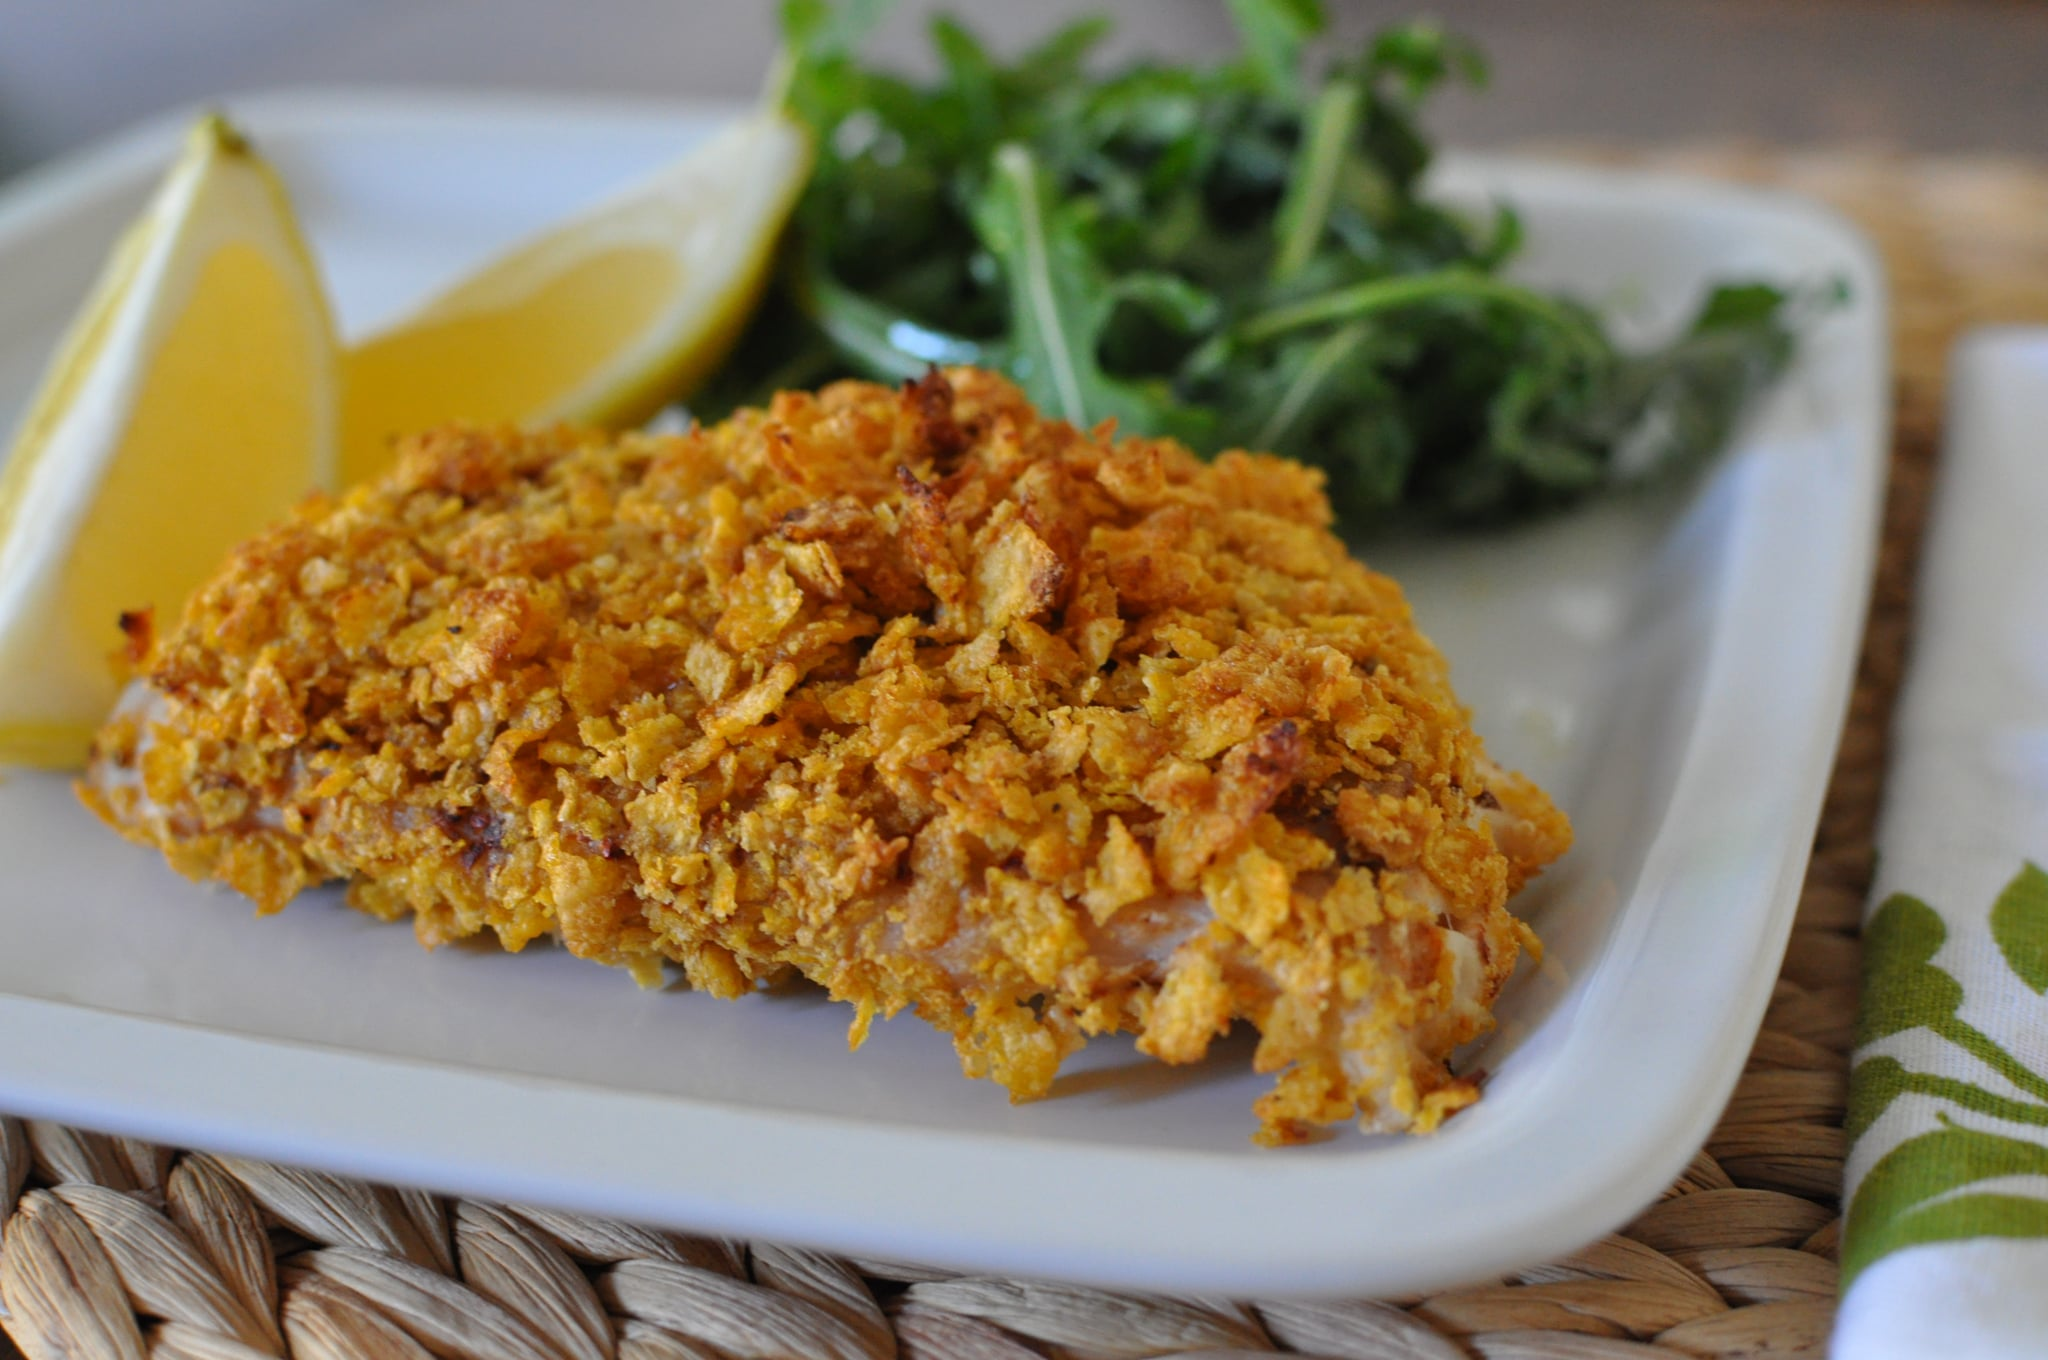 Healthy cornflake crusted fish recipe popsugar food for Tasty fish recipes